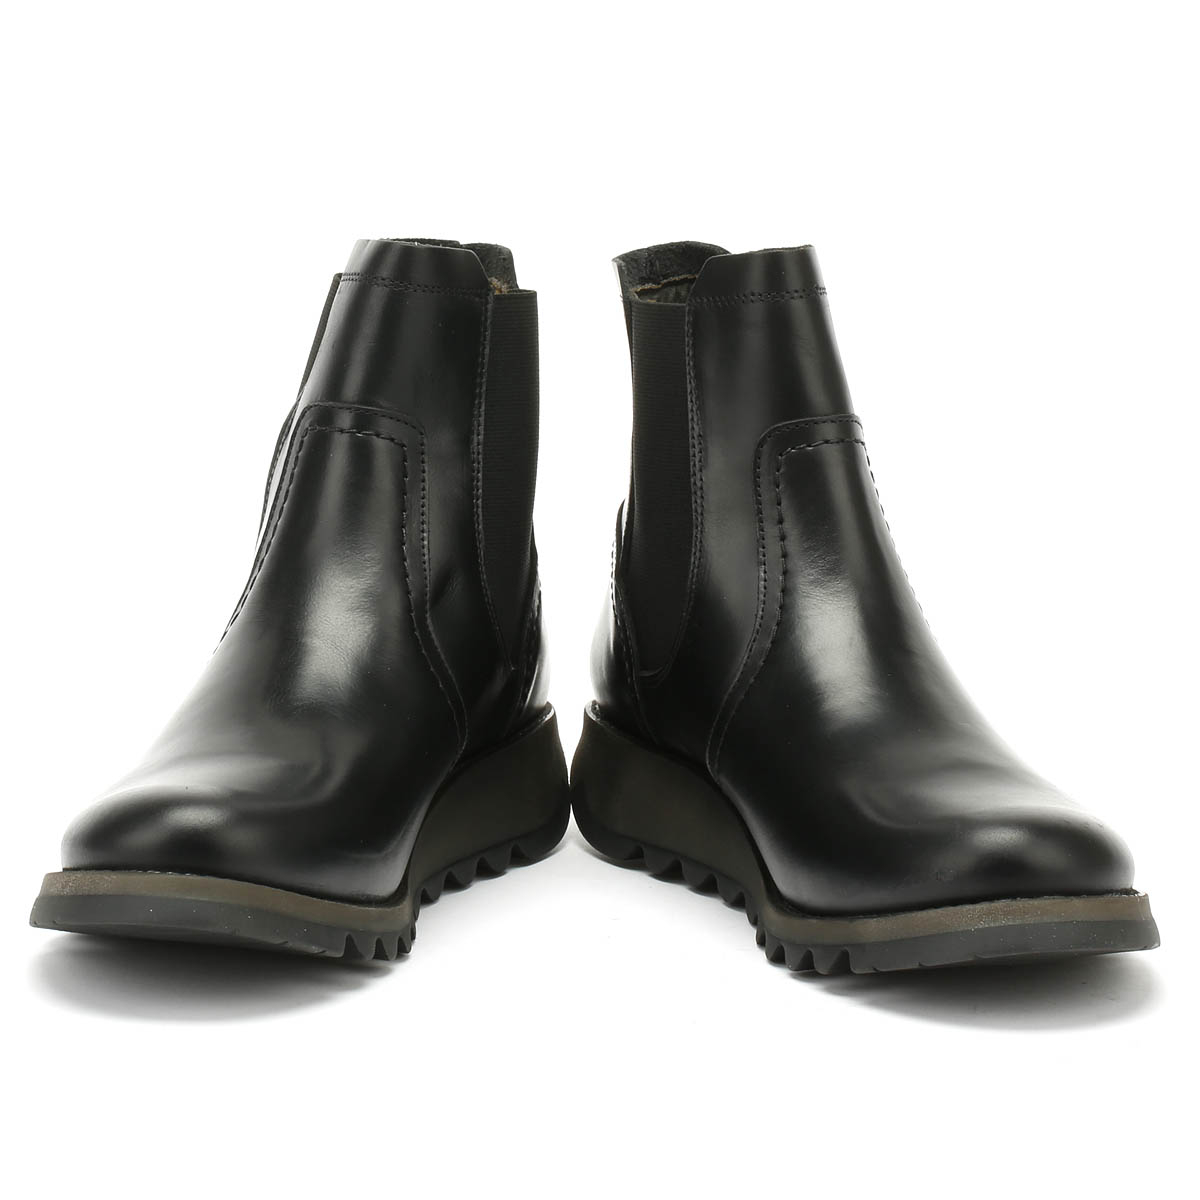 Fly-London-Womens-Boots-Black-Scon-Rug-Ladies-Leather-Winter-Ankle-Shoes thumbnail 14